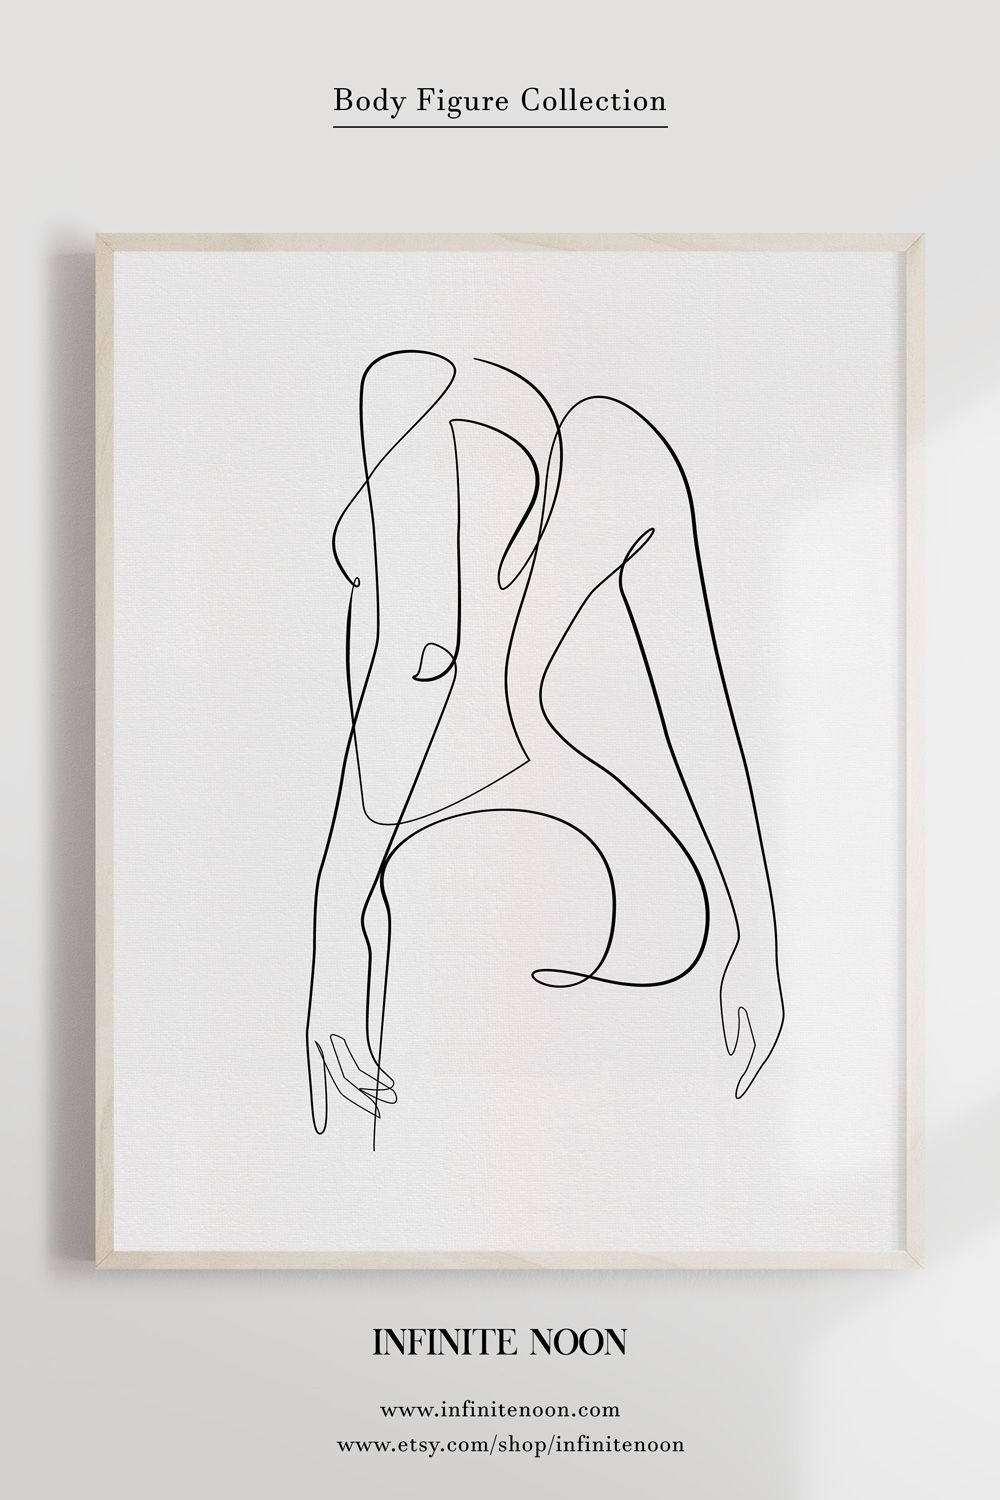 Female One Line Illustration, Minimalist Woman Drawing Print, Nude Line Art, Nudeart Printable Wall Art, Abstract Naked Back Poster, Anatomy